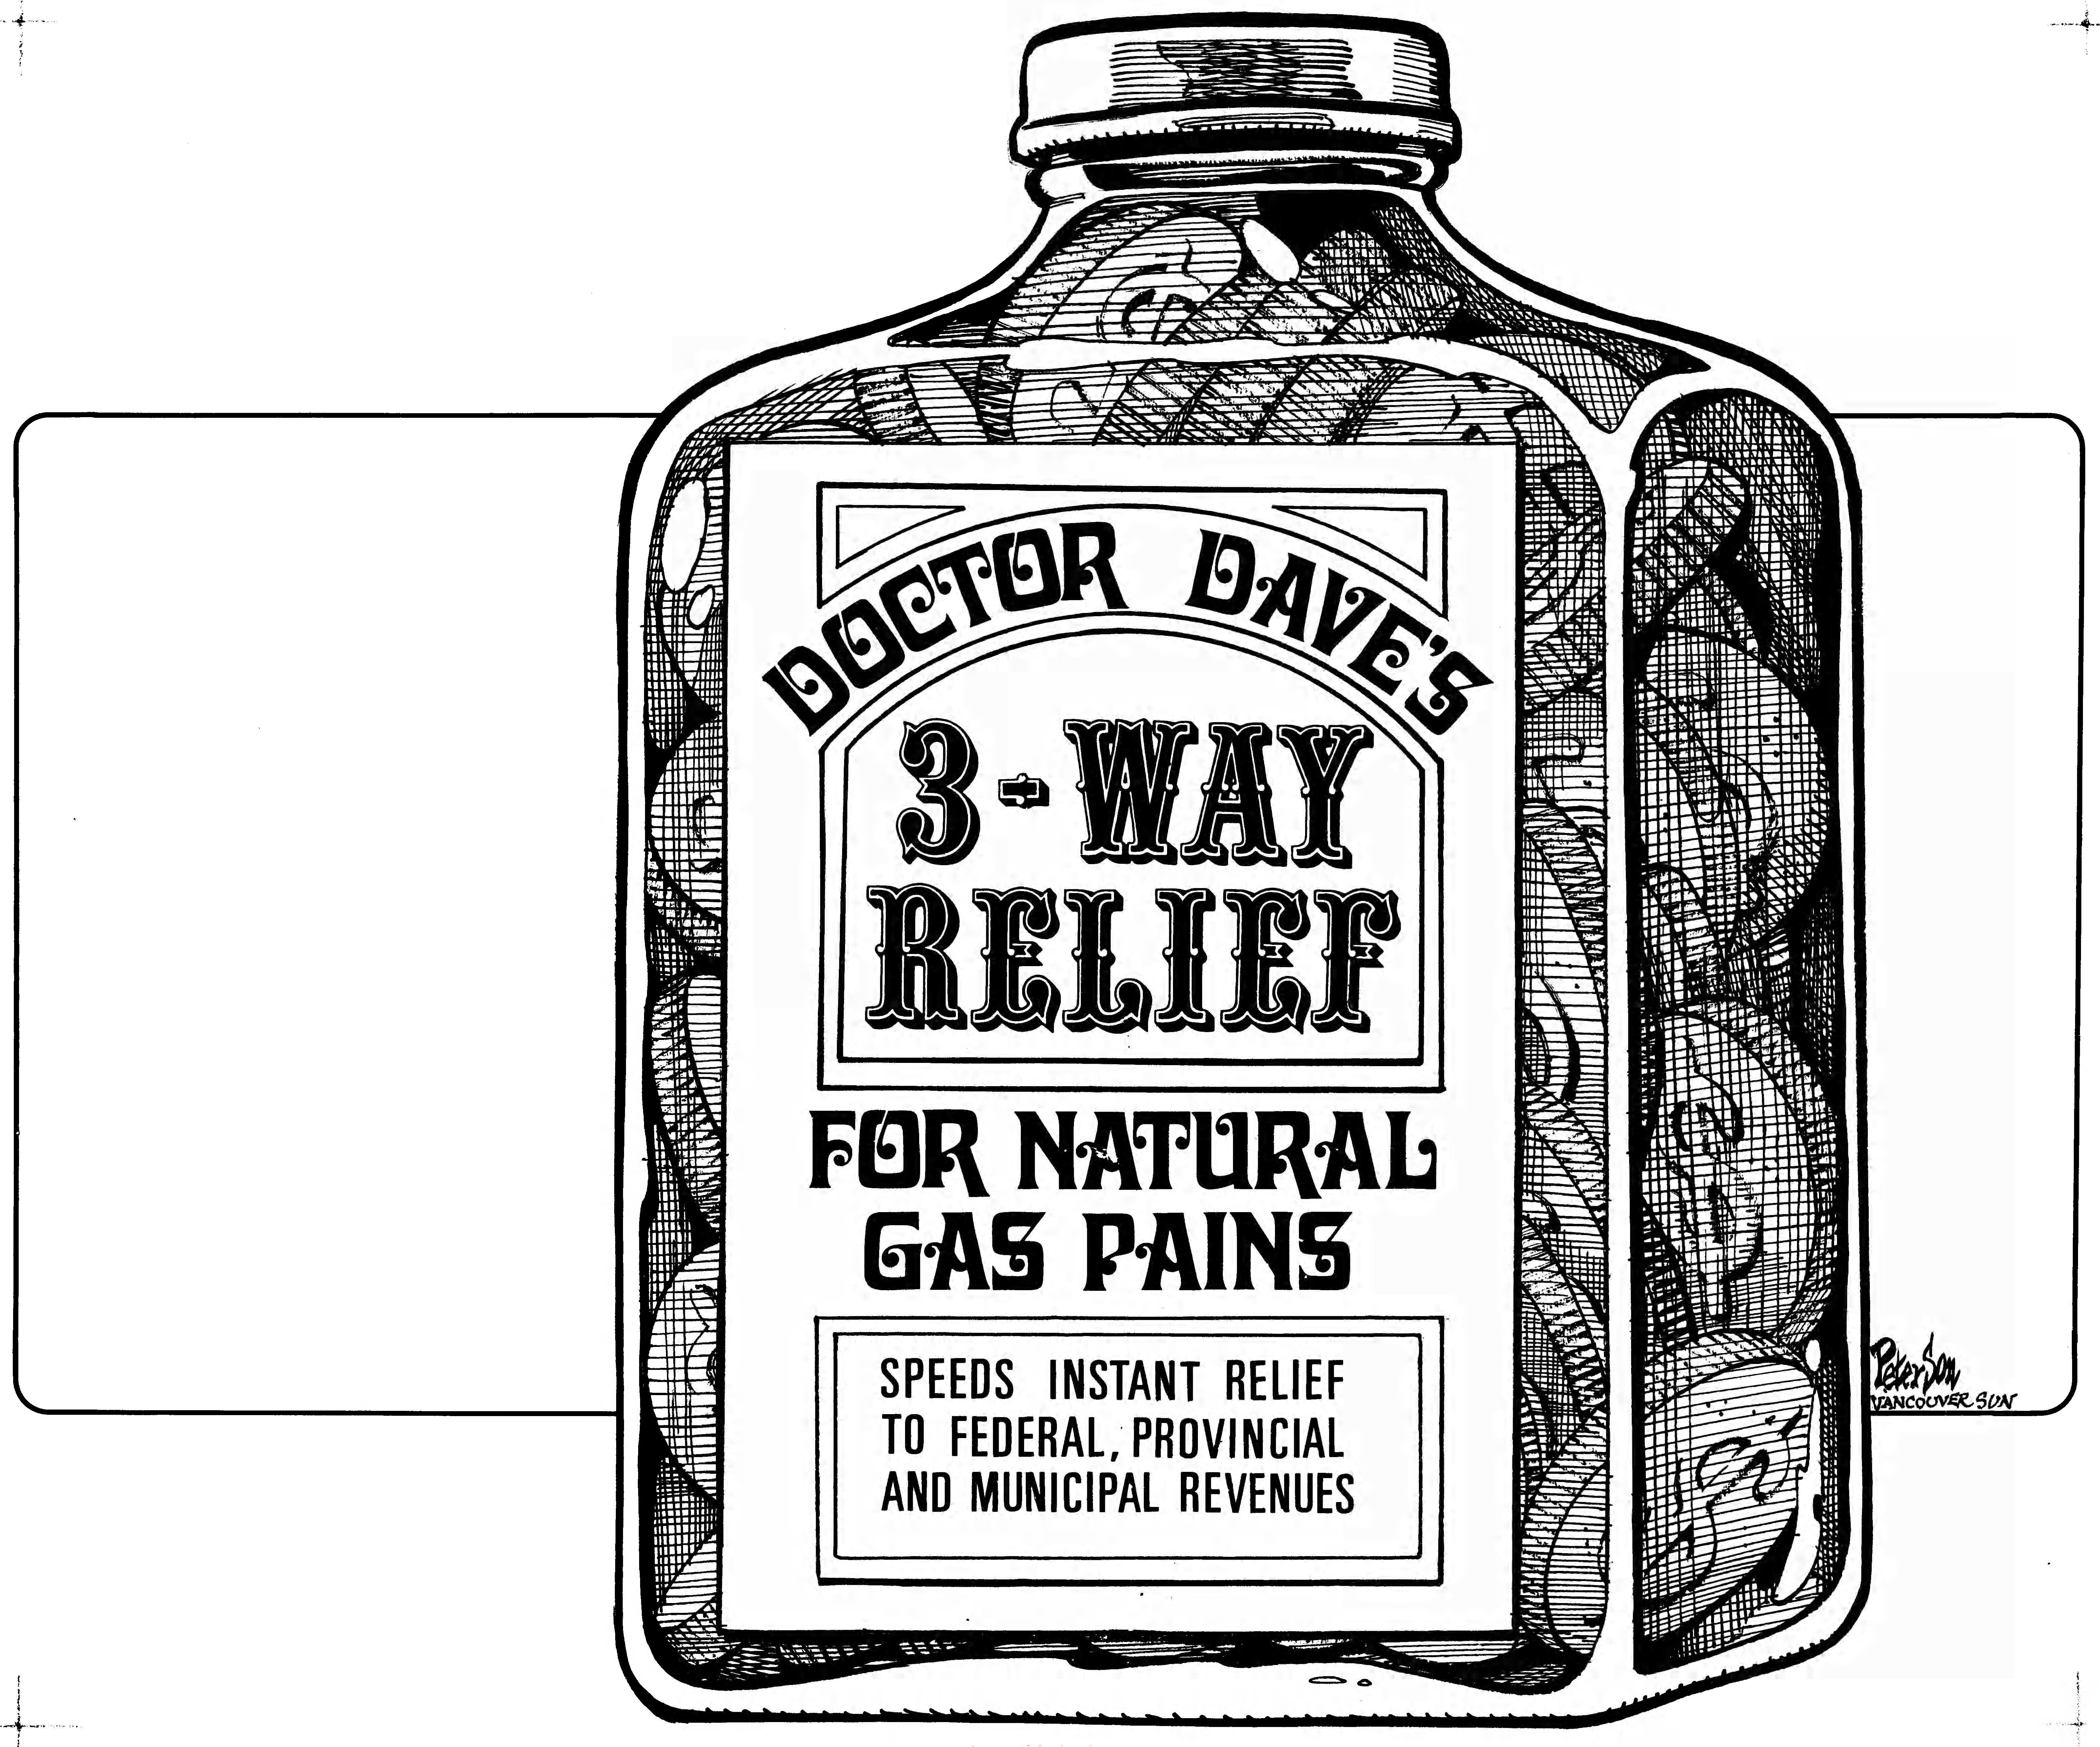 Editorial cartoon from January, 1975 featuring a bottle of coins with the label: Doctor Dave's 3-Way Relief For Natural Gas Pains: Speeds Instant Relief To Federal, Provincial, and Municipal Revenues.